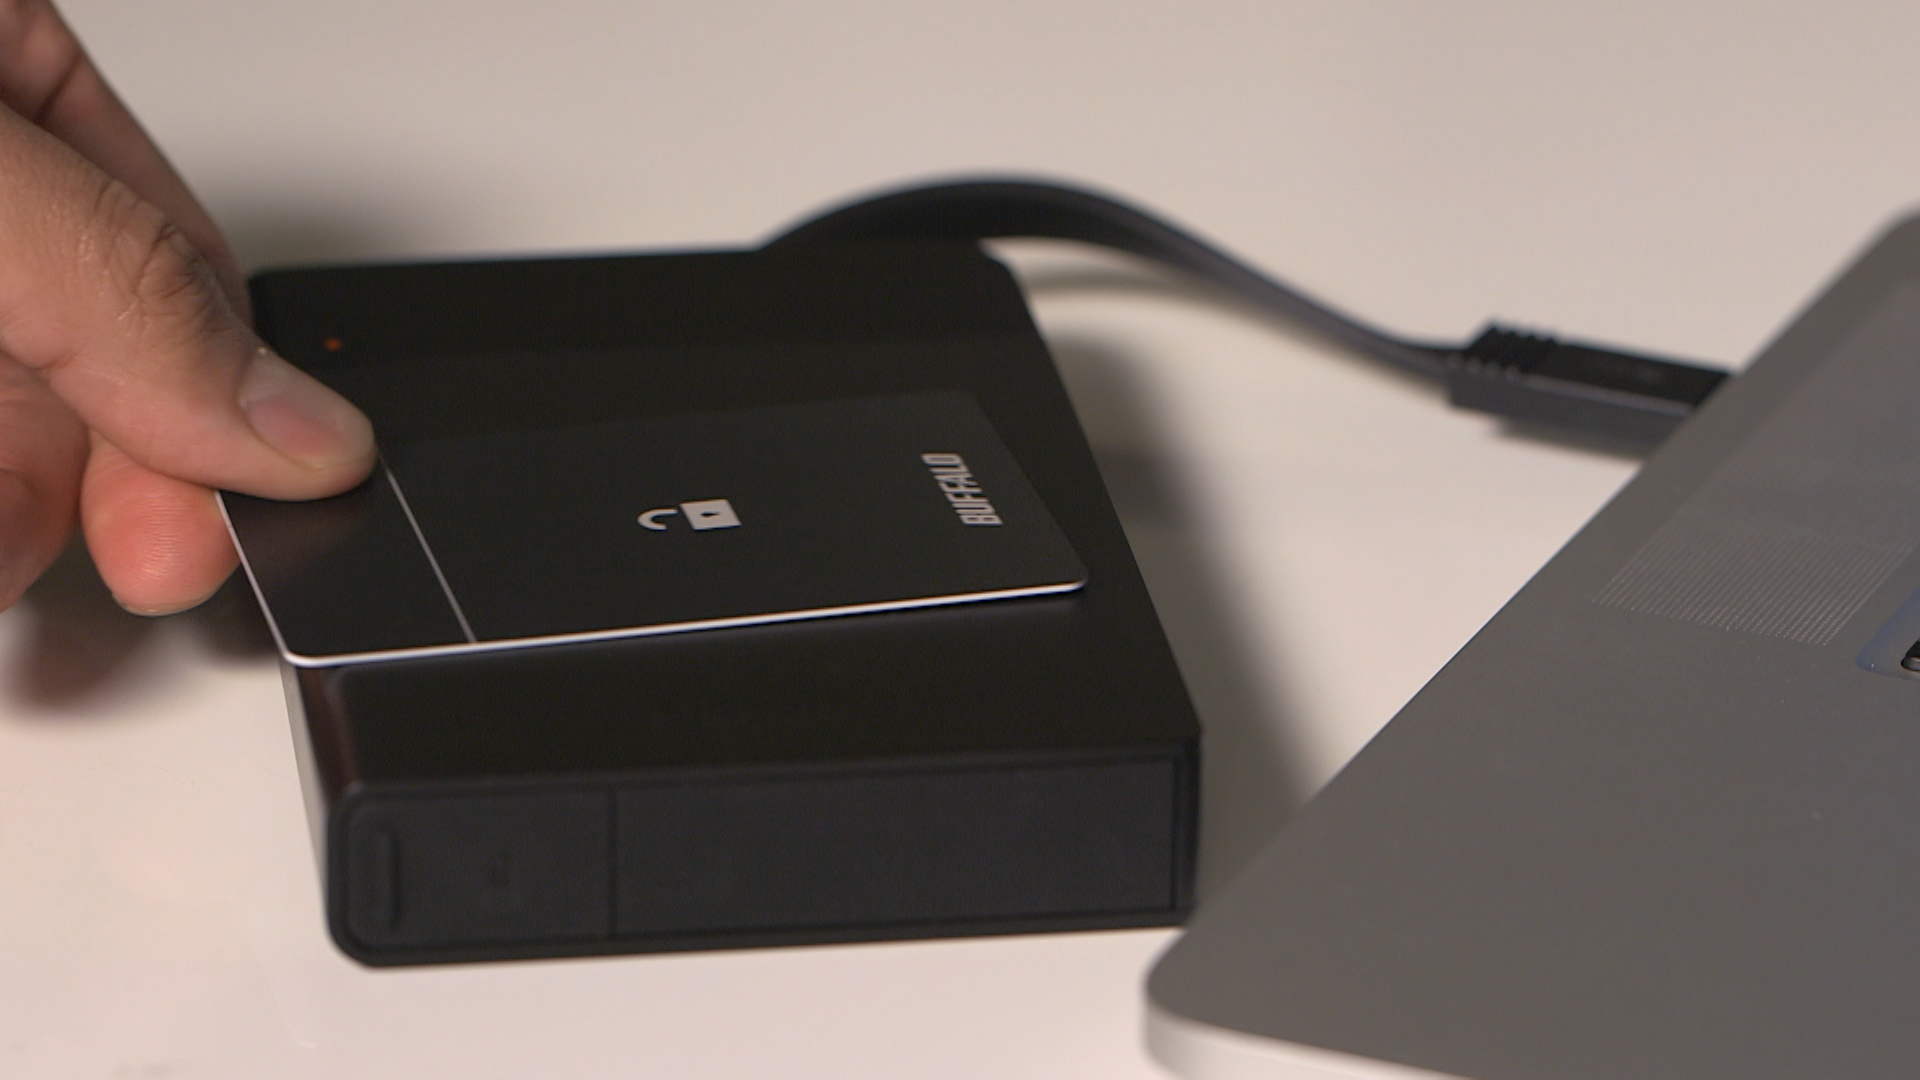 Video: The Buffalo MiniStation Extreme NFC is quite extreme